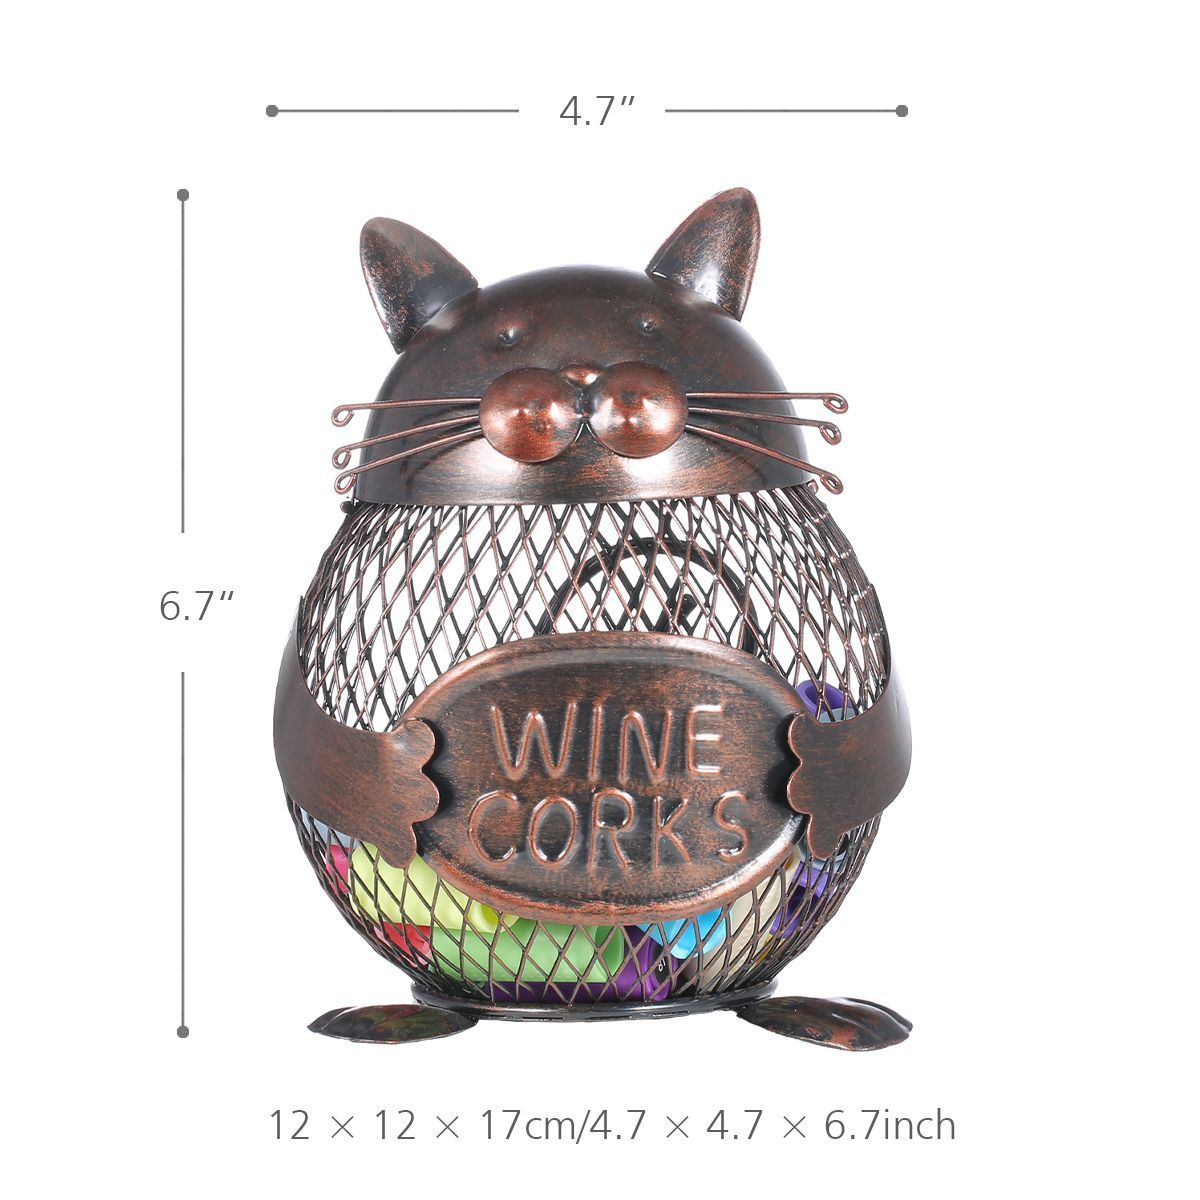 Wine Cork Cat - TEROF